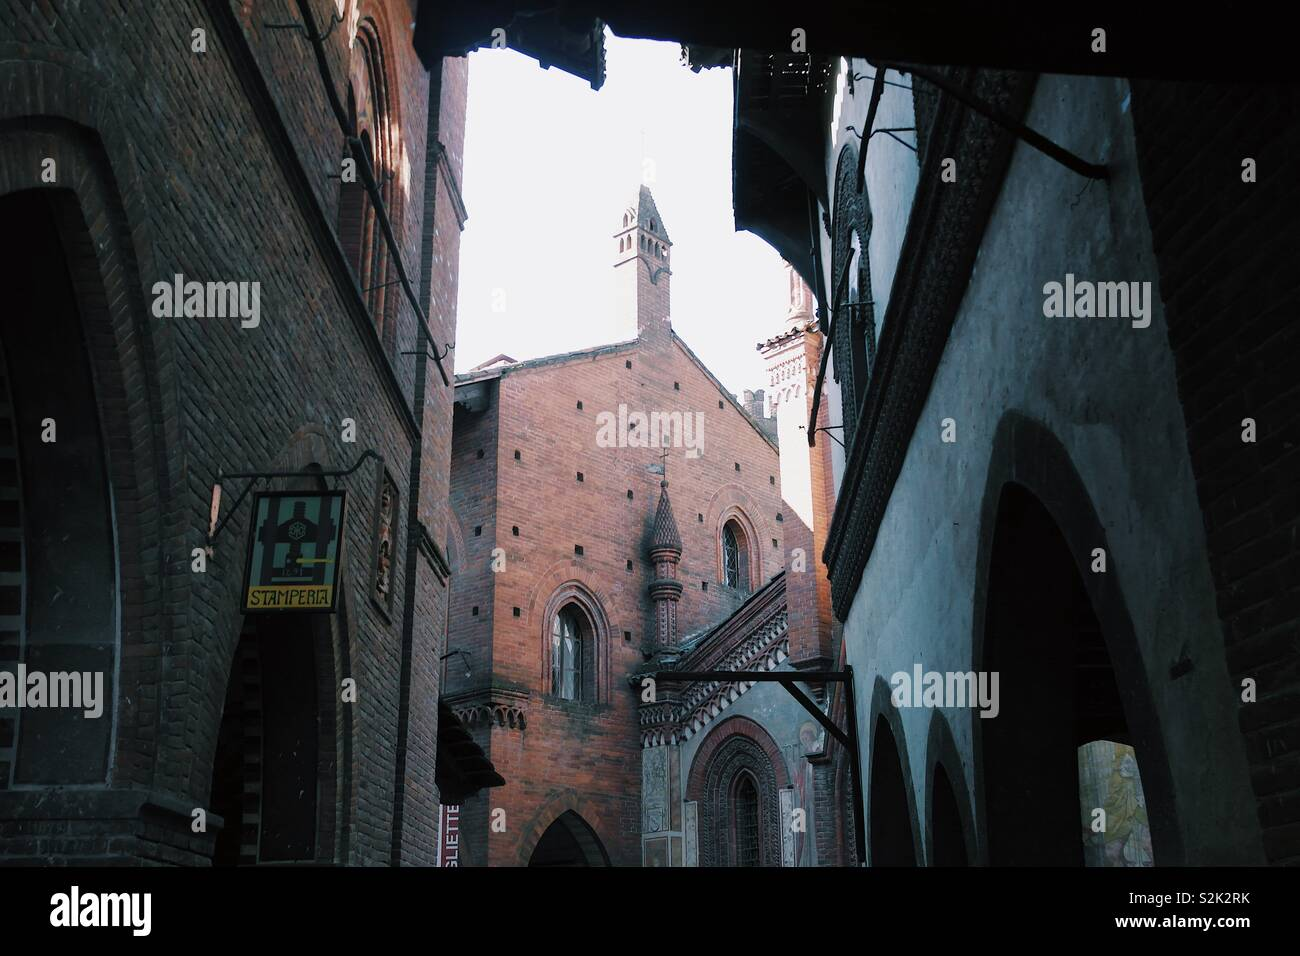 Borgo medievale Stock Photo